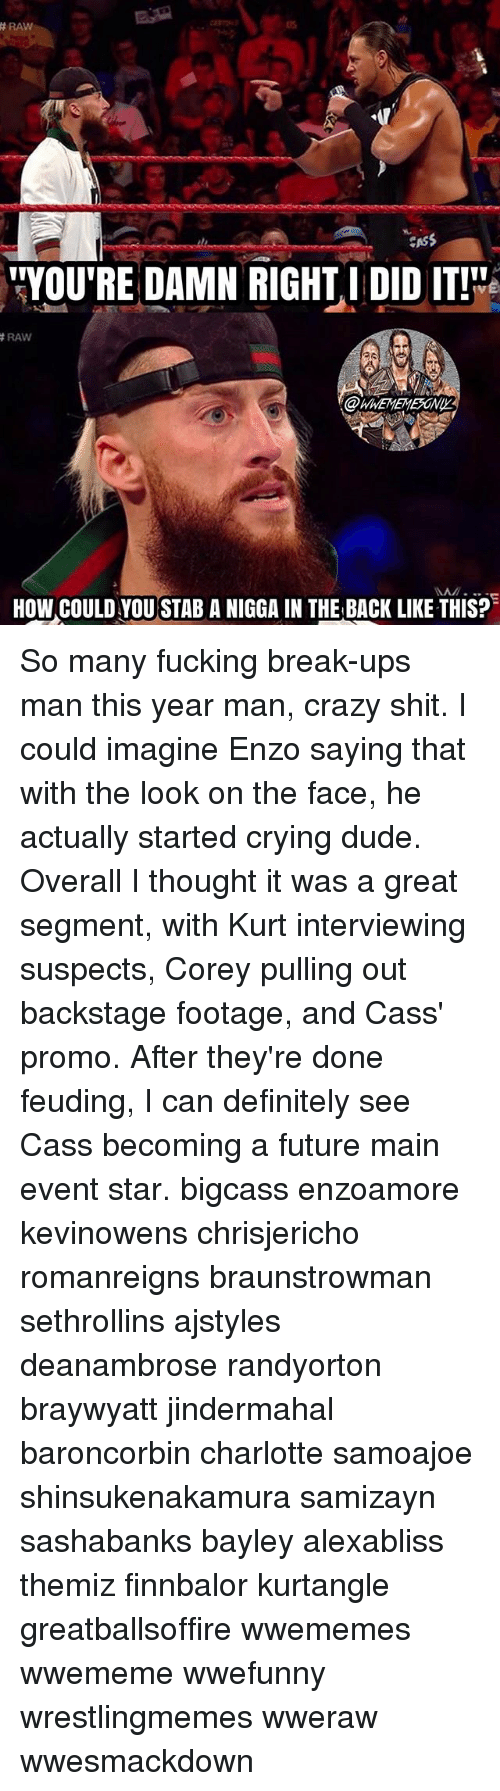 """Ups Man: RAW  CASS  """"YOU'RE DAMN RIGHT I DID IT!  RAW  HOW COULD YOU STAB A NIGGA IN THE BACK LIKE THIS? So many fucking break-ups man this year man, crazy shit. I could imagine Enzo saying that with the look on the face, he actually started crying dude. Overall I thought it was a great segment, with Kurt interviewing suspects, Corey pulling out backstage footage, and Cass' promo. After they're done feuding, I can definitely see Cass becoming a future main event star. bigcass enzoamore kevinowens chrisjericho romanreigns braunstrowman sethrollins ajstyles deanambrose randyorton braywyatt jindermahal baroncorbin charlotte samoajoe shinsukenakamura samizayn sashabanks bayley alexabliss themiz finnbalor kurtangle greatballsoffire wwememes wwememe wwefunny wrestlingmemes wweraw wwesmackdown"""